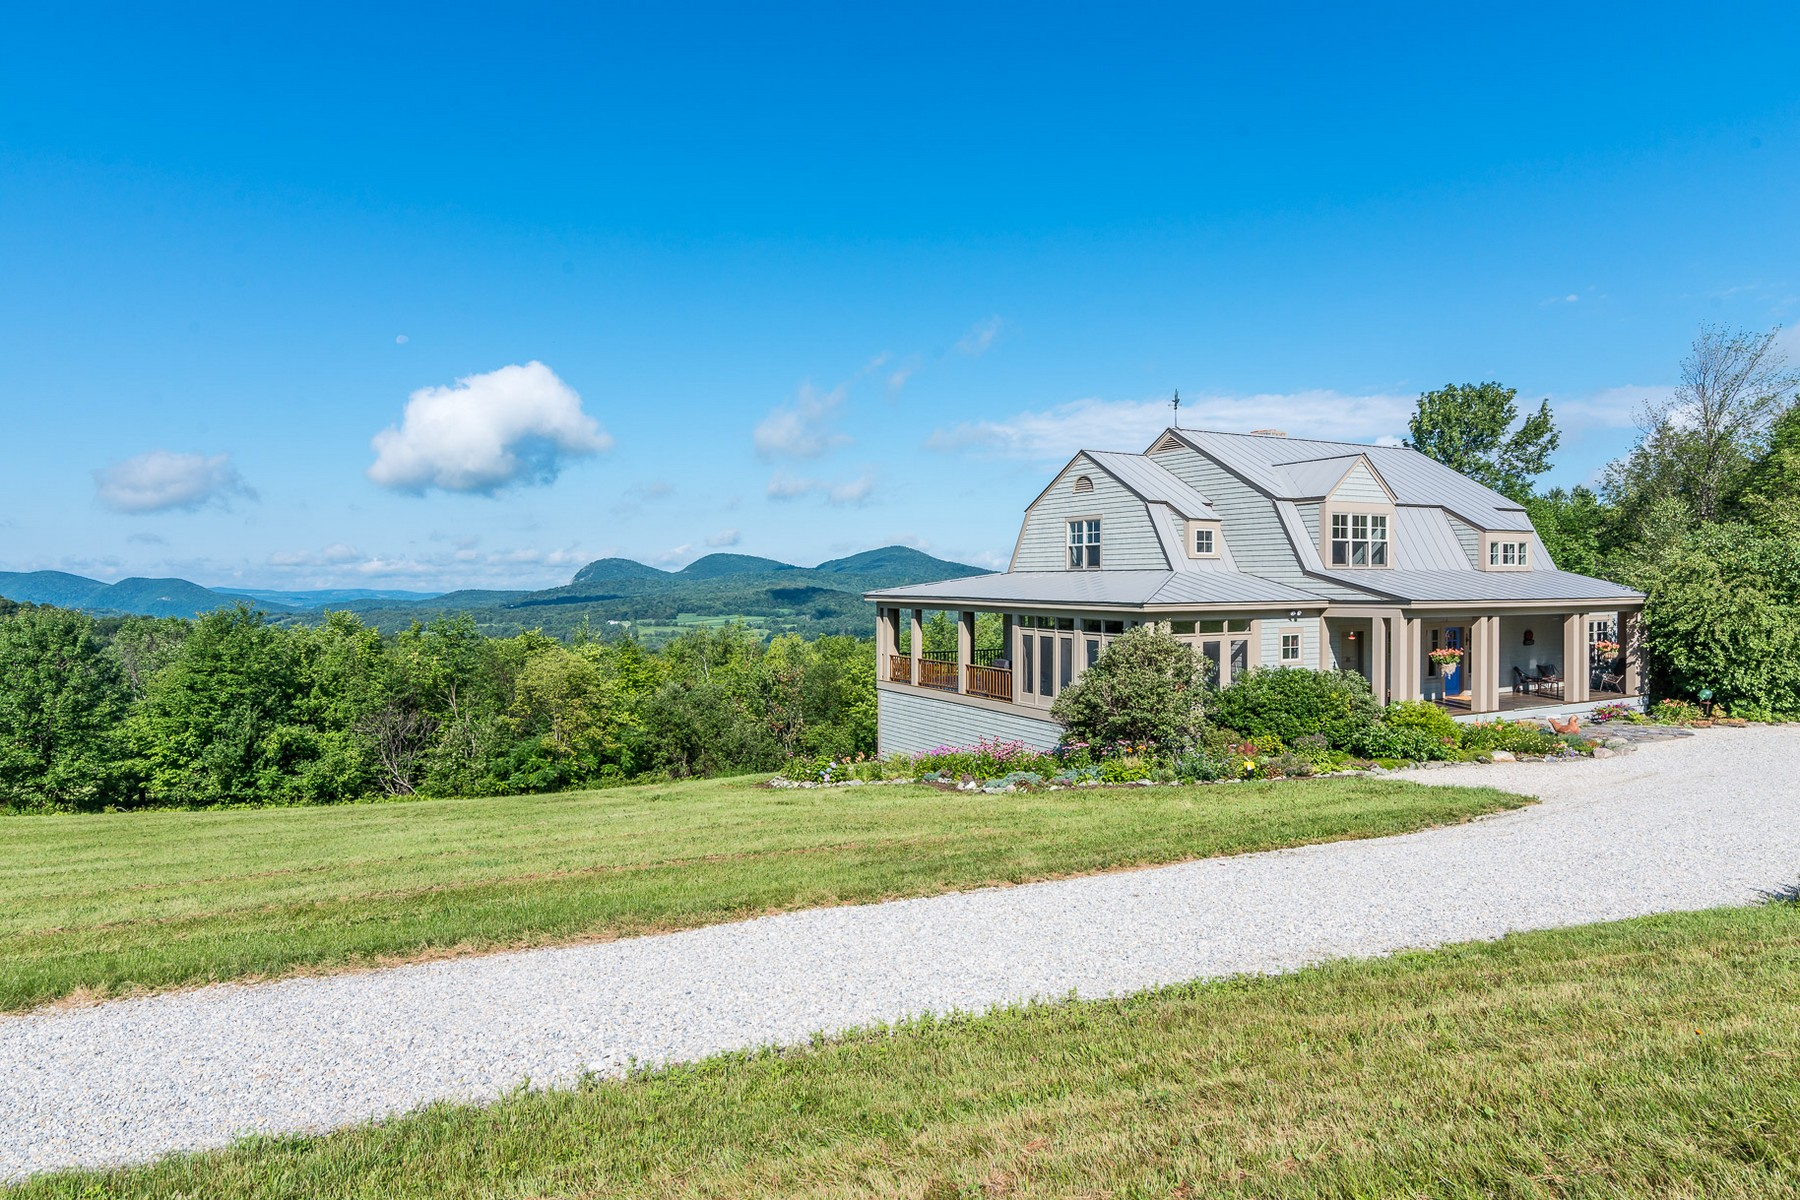 Single Family Home for Sale at 1638 Lilly Hill Rd, Danby Danby, Vermont 05761 United States